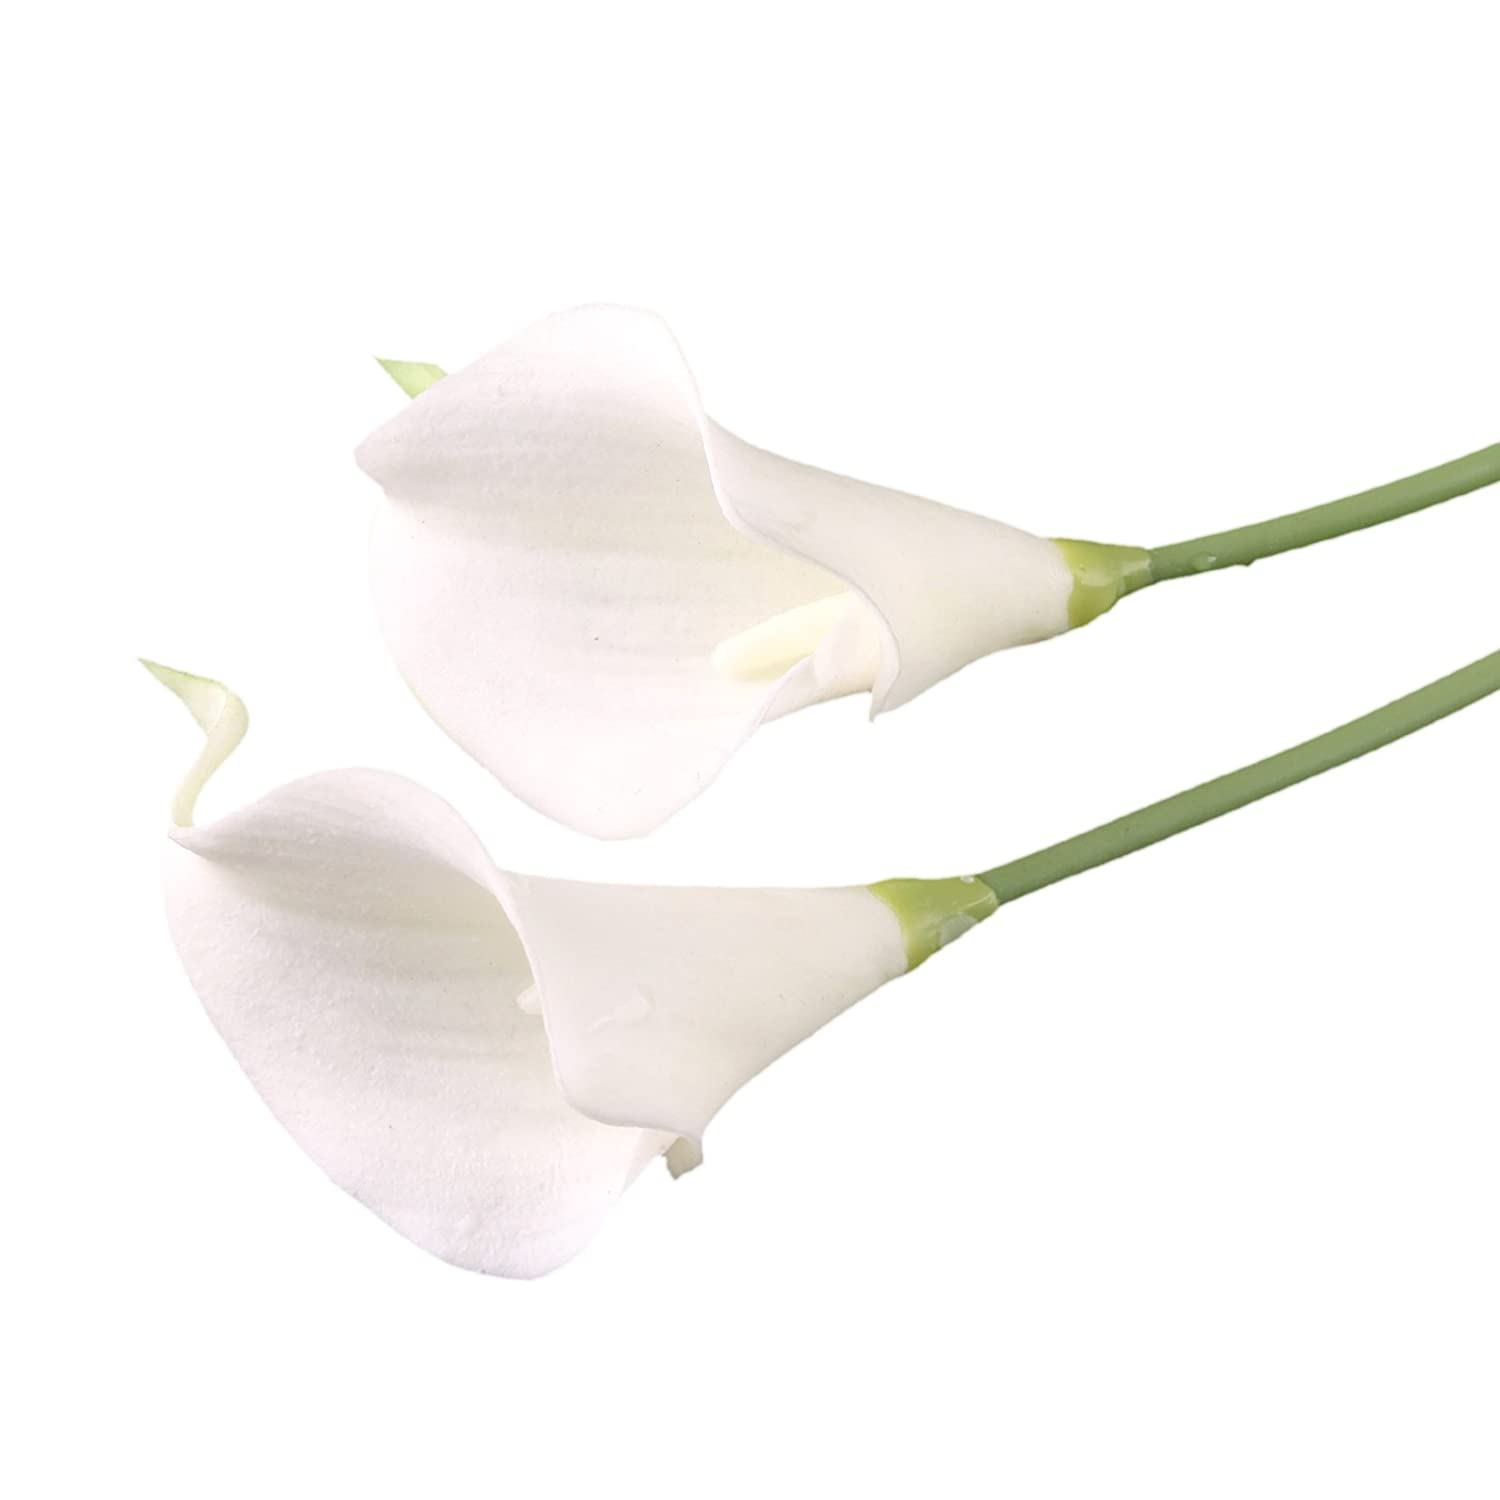 10pcs Calla Lily Bridal Wedding Bouquet head Latex Real Touch Flower Bouquets (KC51 White) Artifical Flower